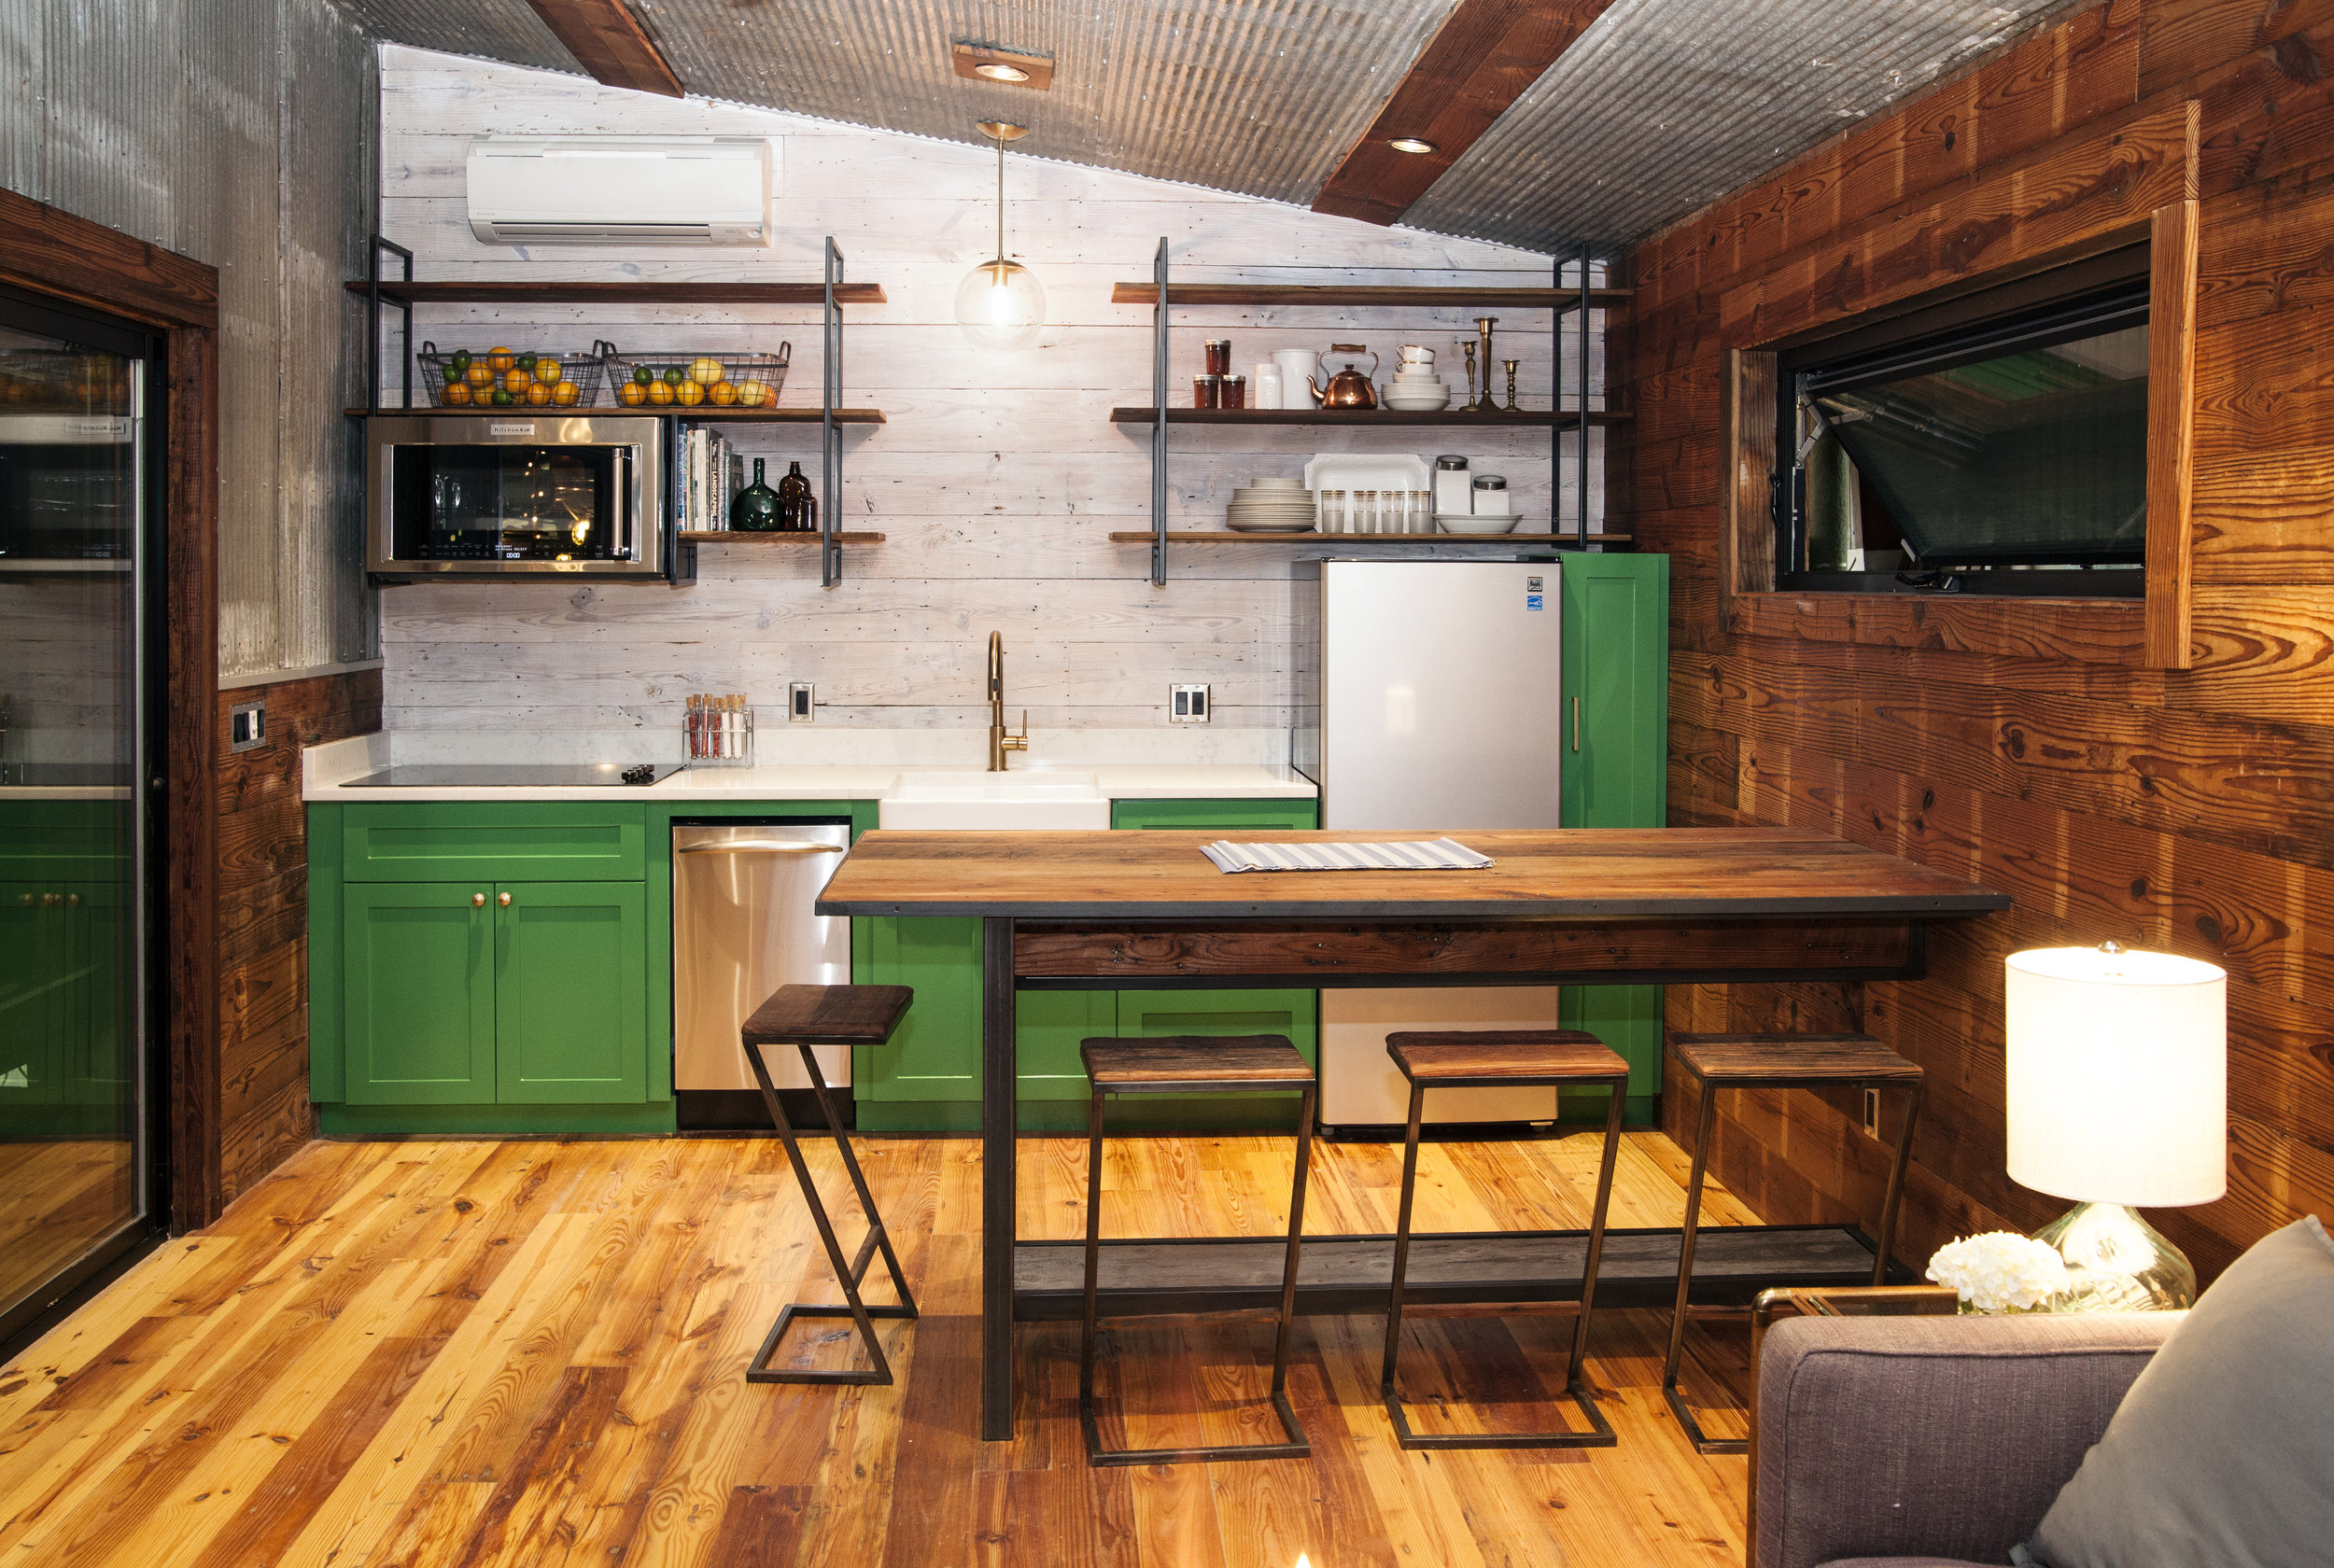 Even though this is in one of our smaller Reclaimed Spaces, this kitchen is complete and very usable.